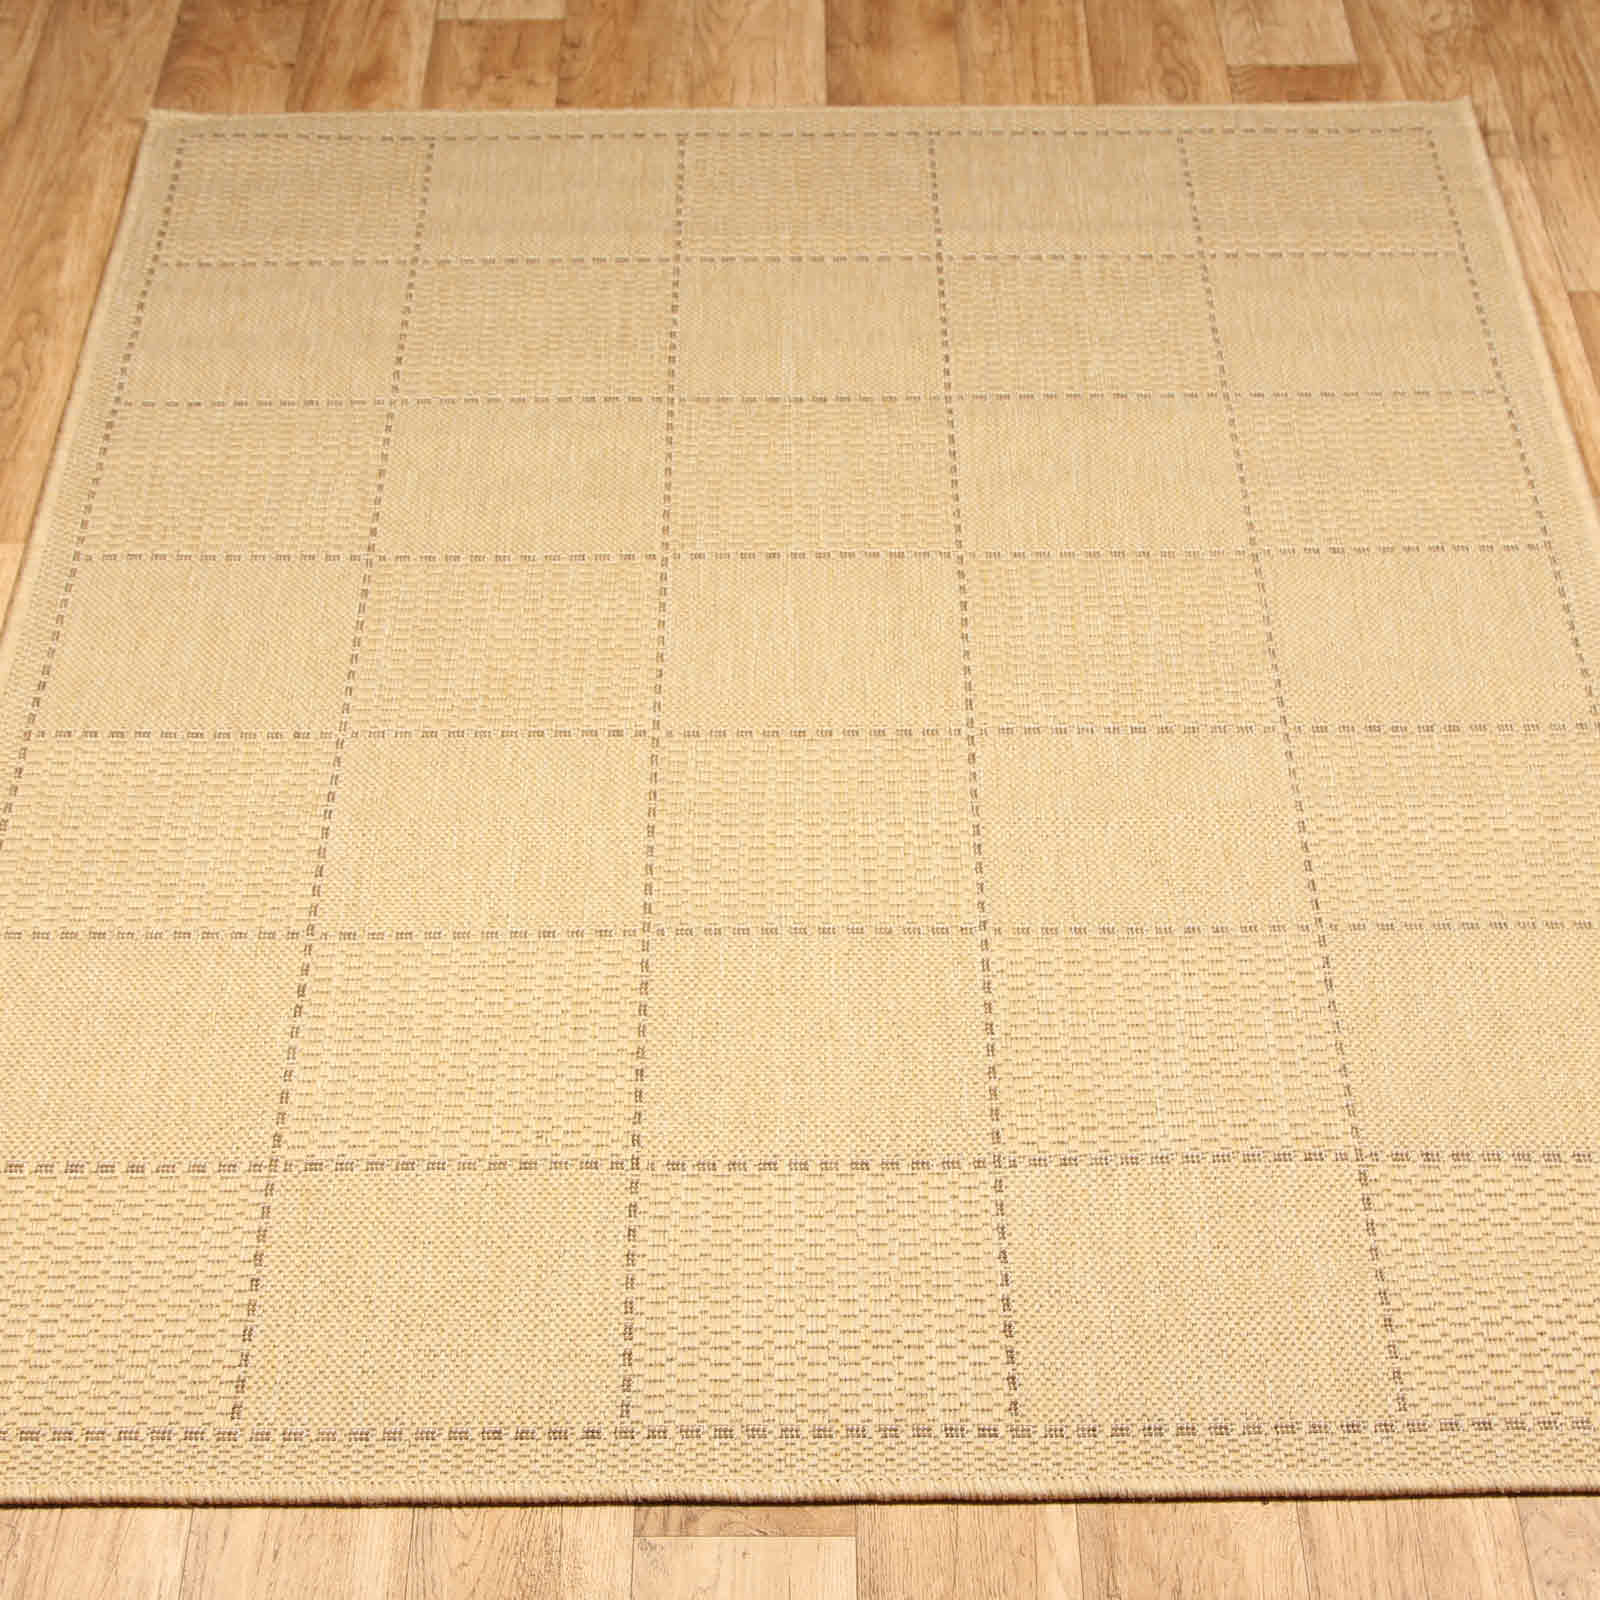 Super Sisalo Anti Slip Kitchen Rugs in Beige